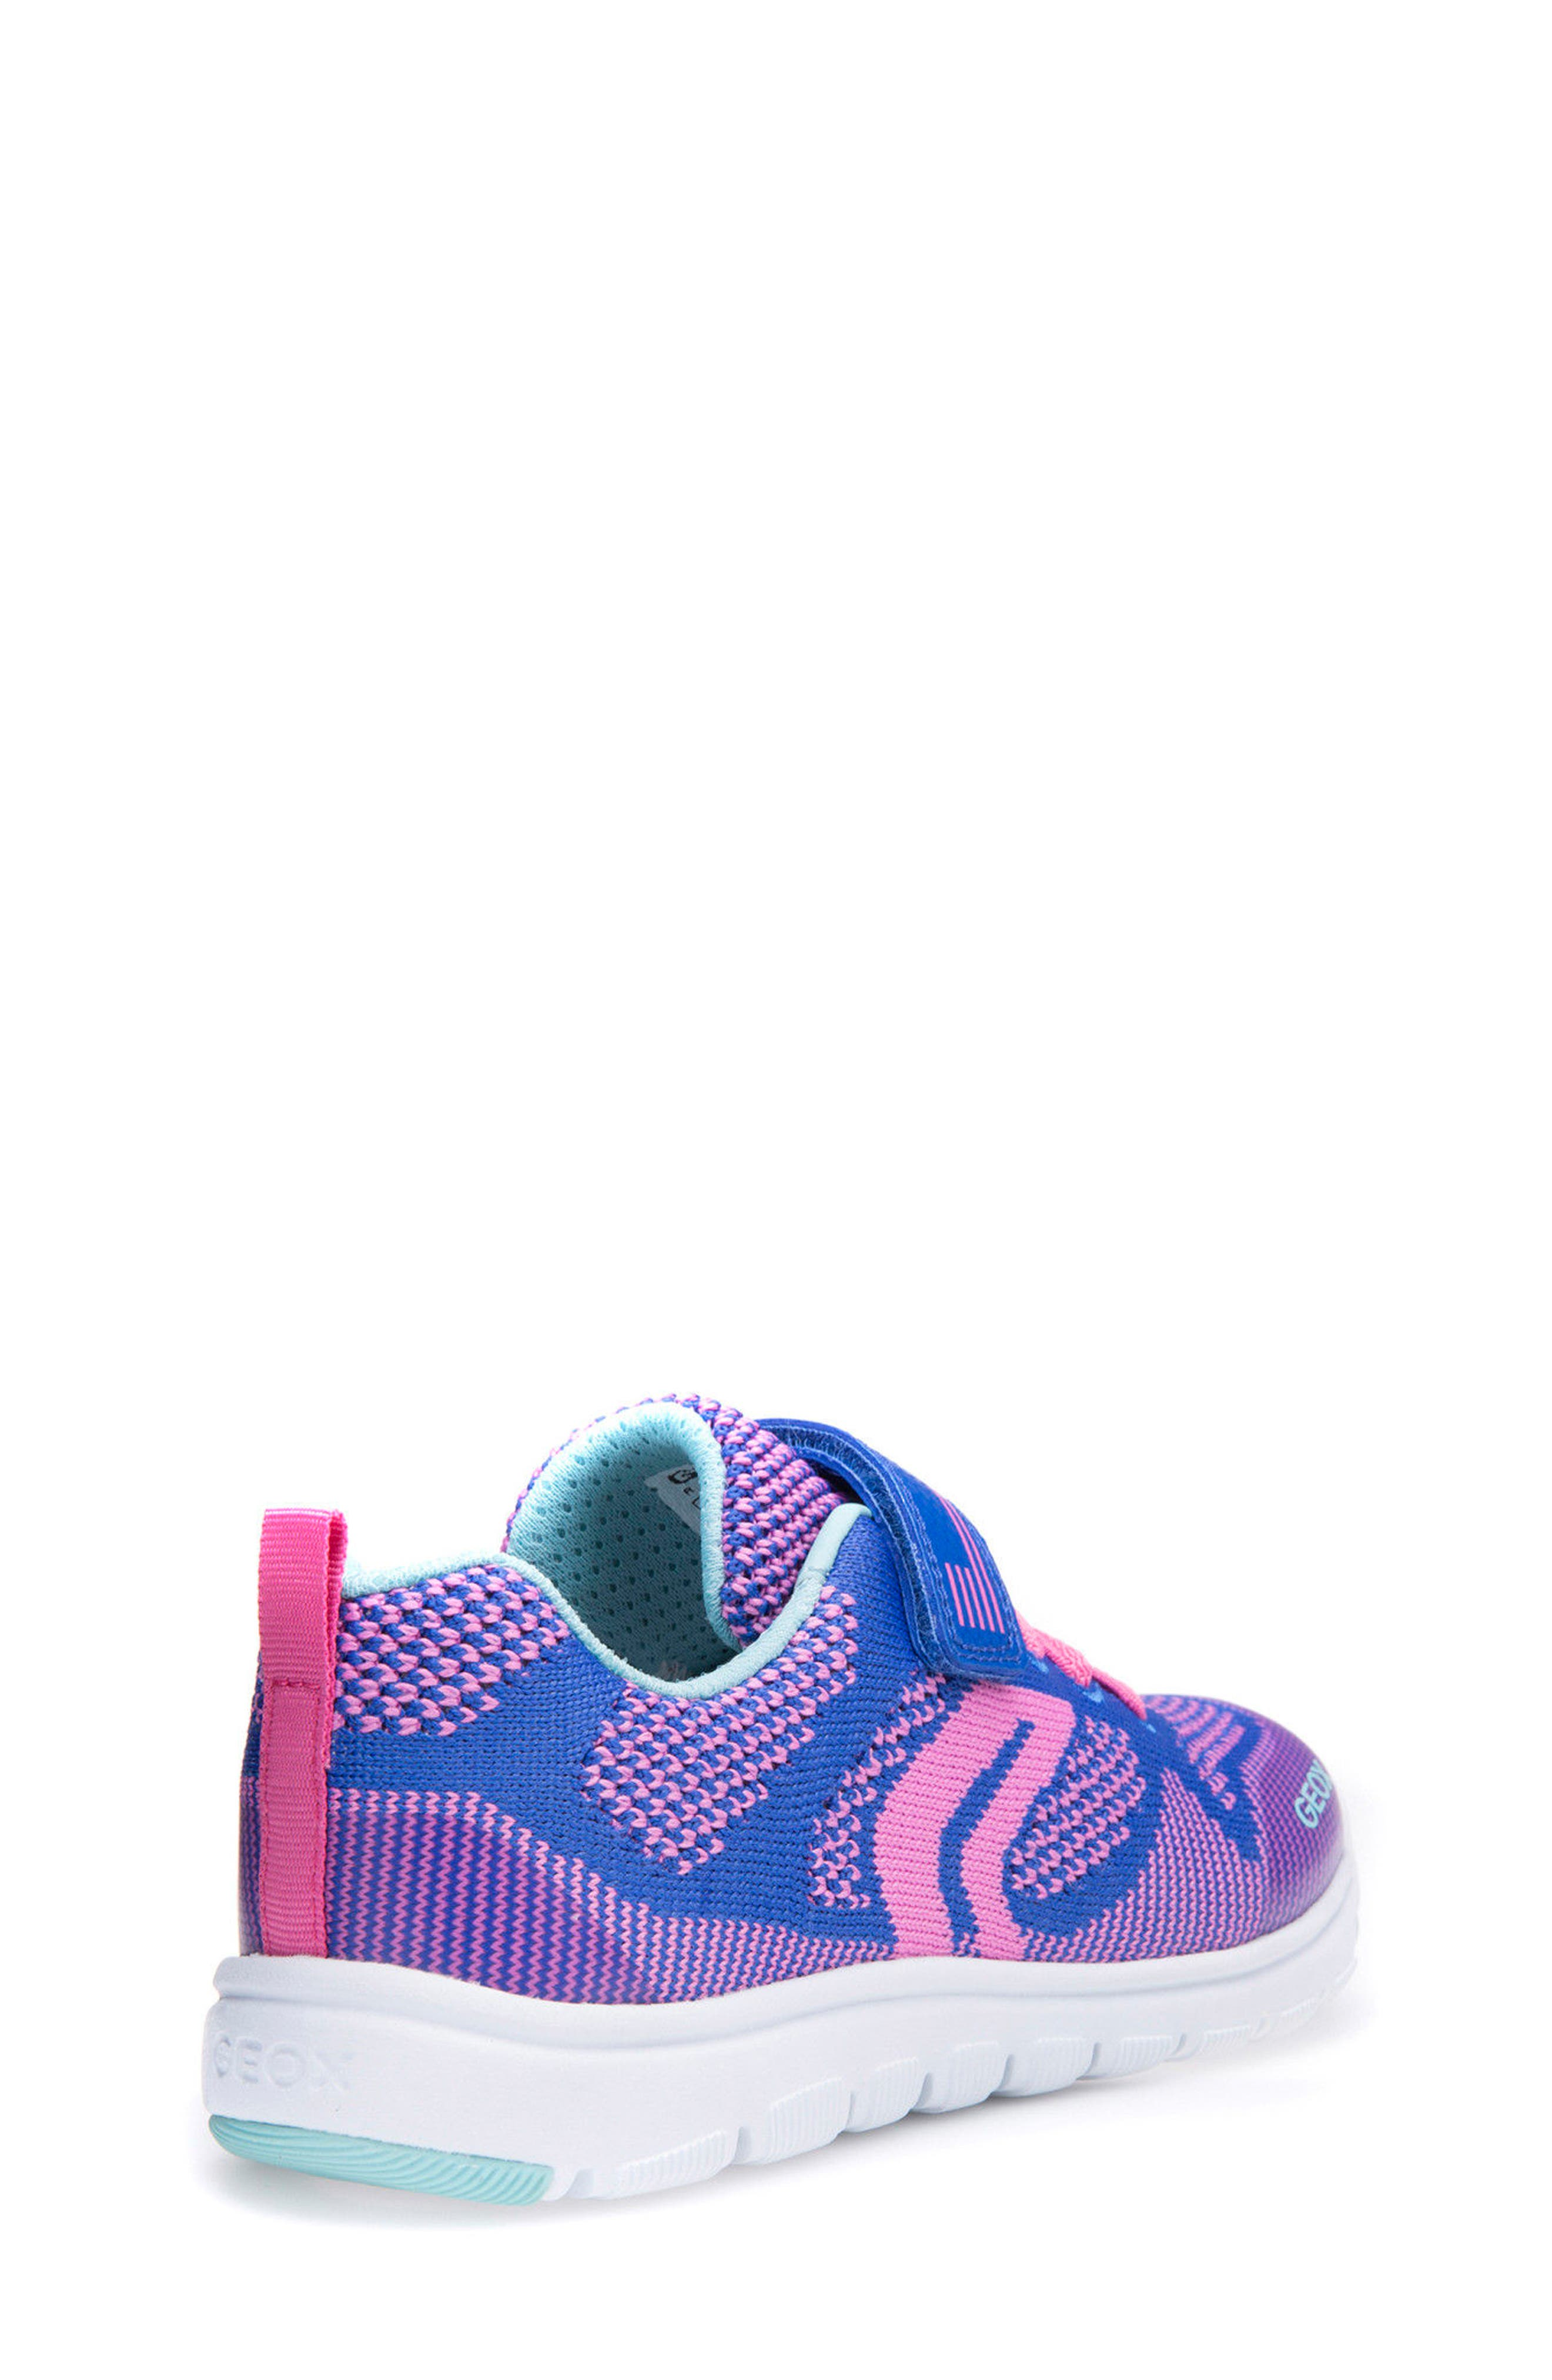 Xunday Low Top Woven Sneaker,                             Alternate thumbnail 4, color,